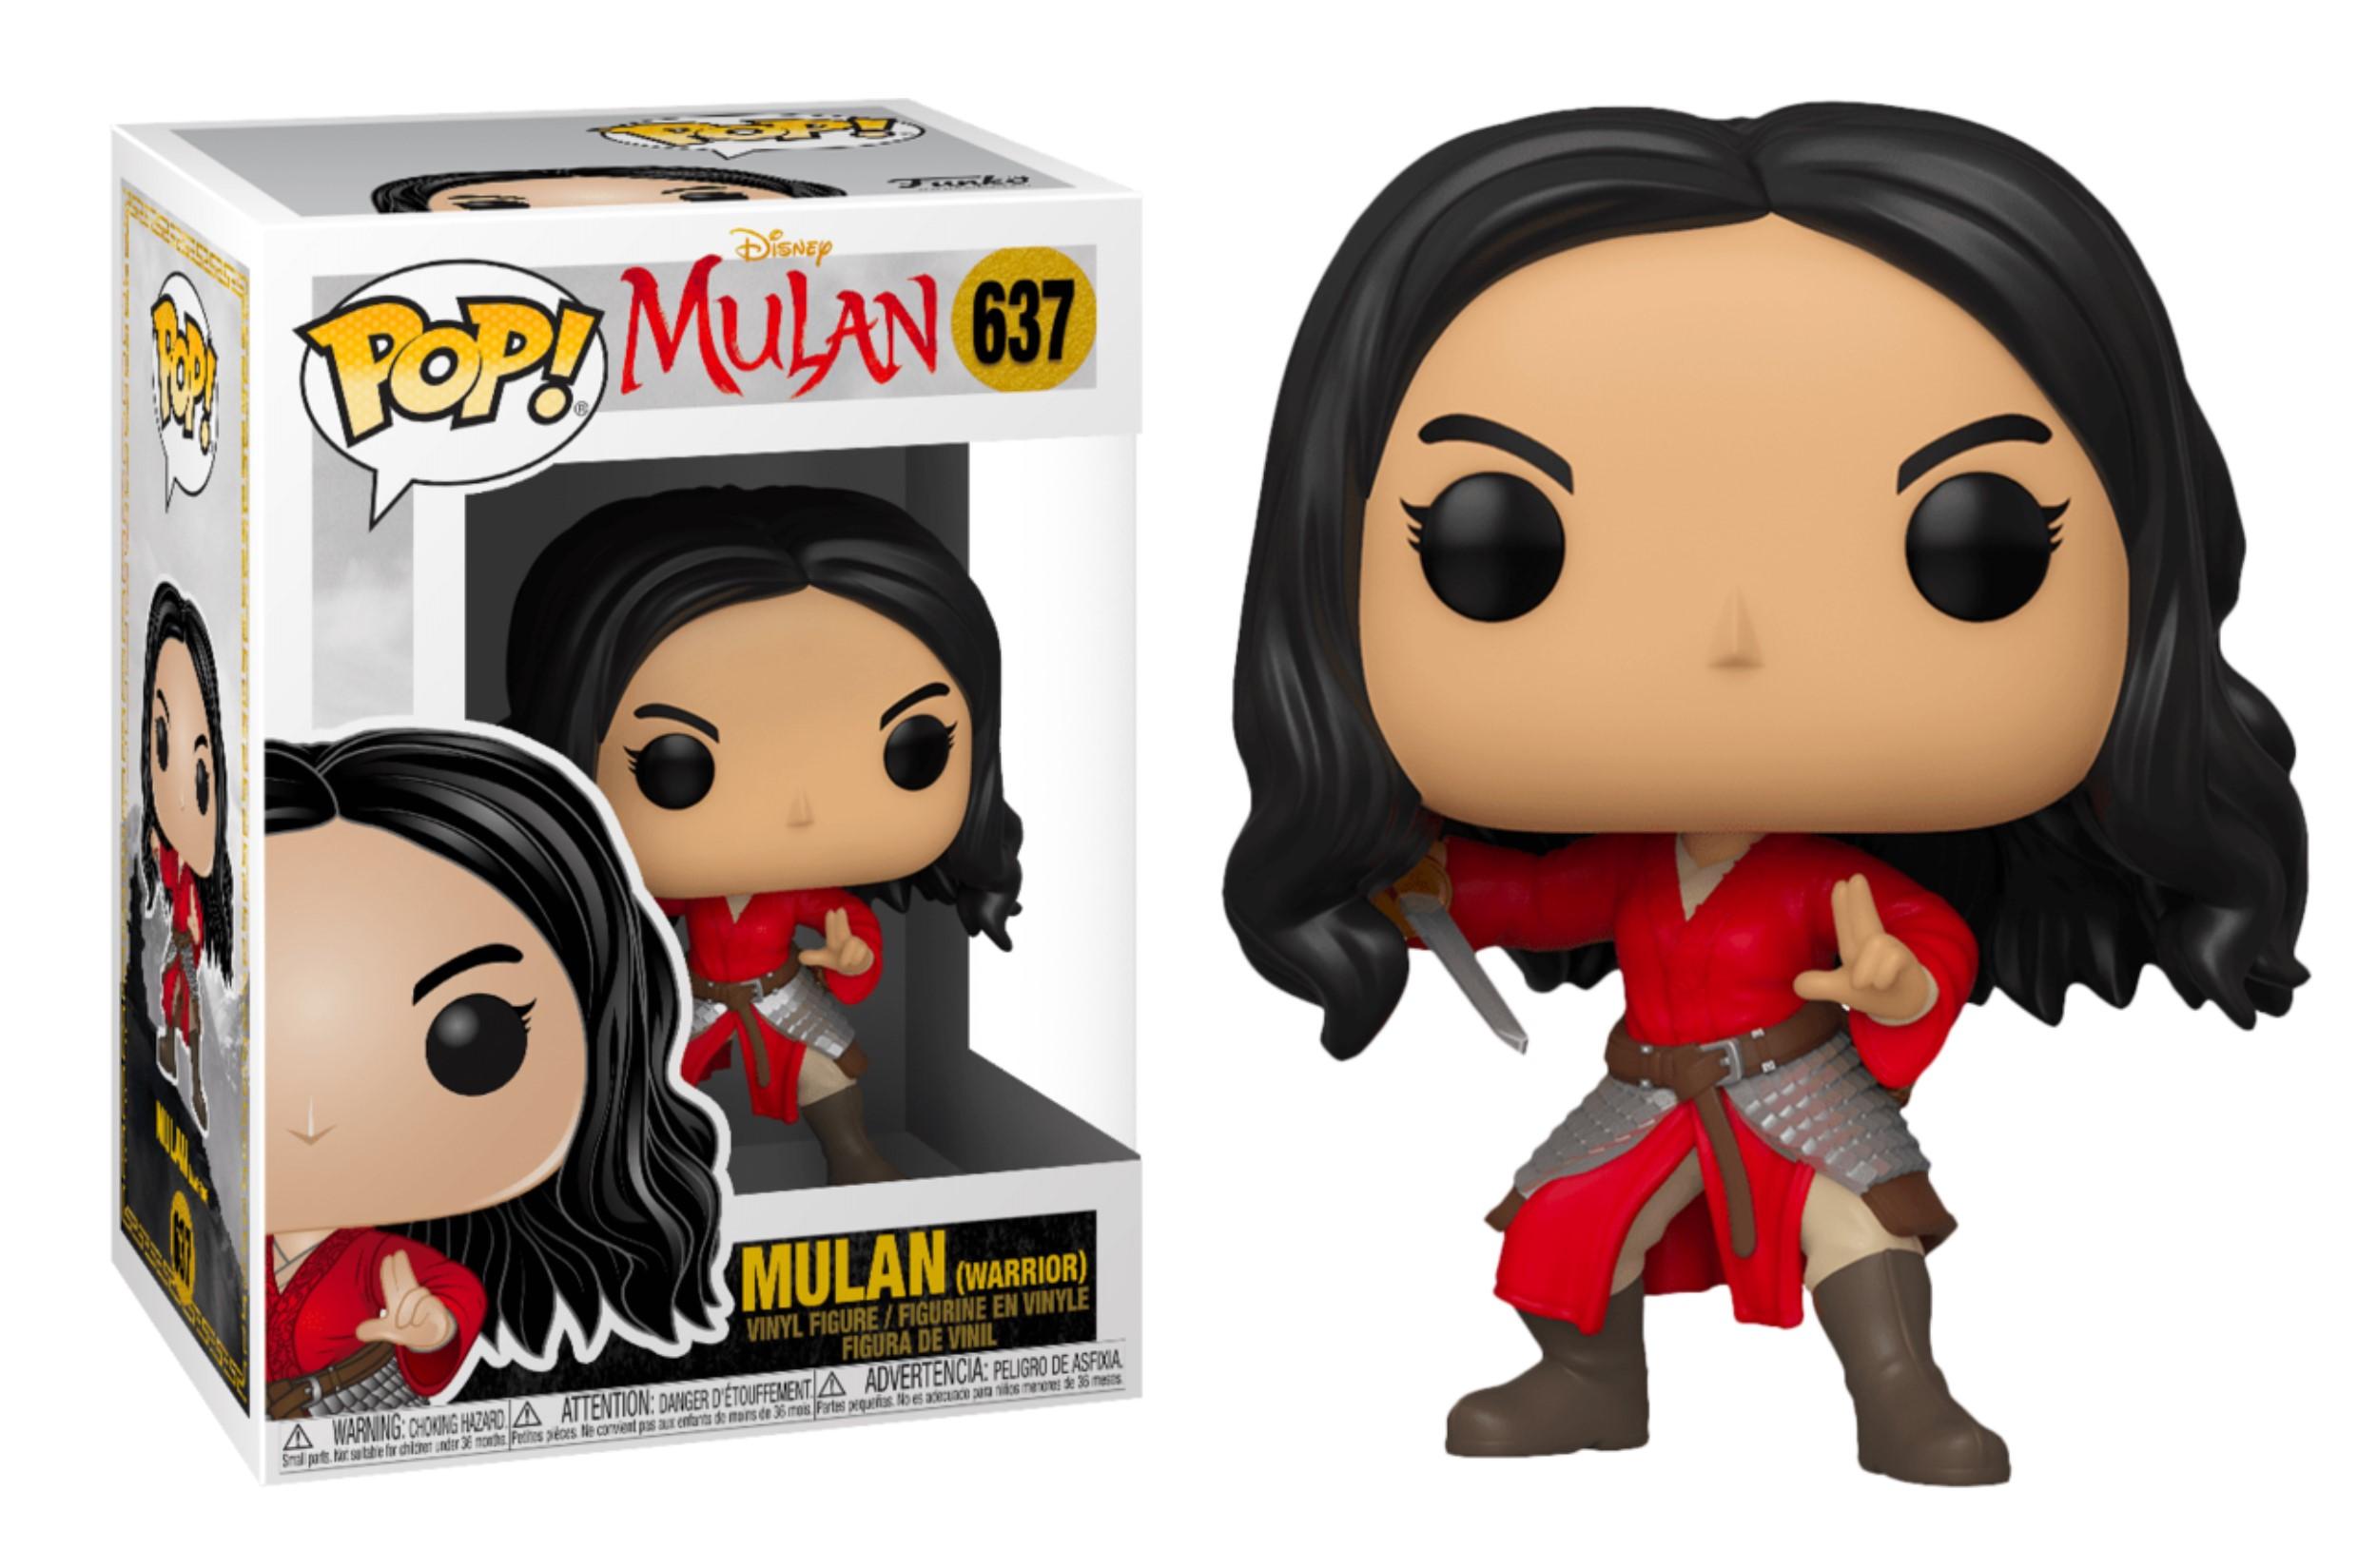 Disney Mulan Warrior 637 Funko POP Vinyl Figure